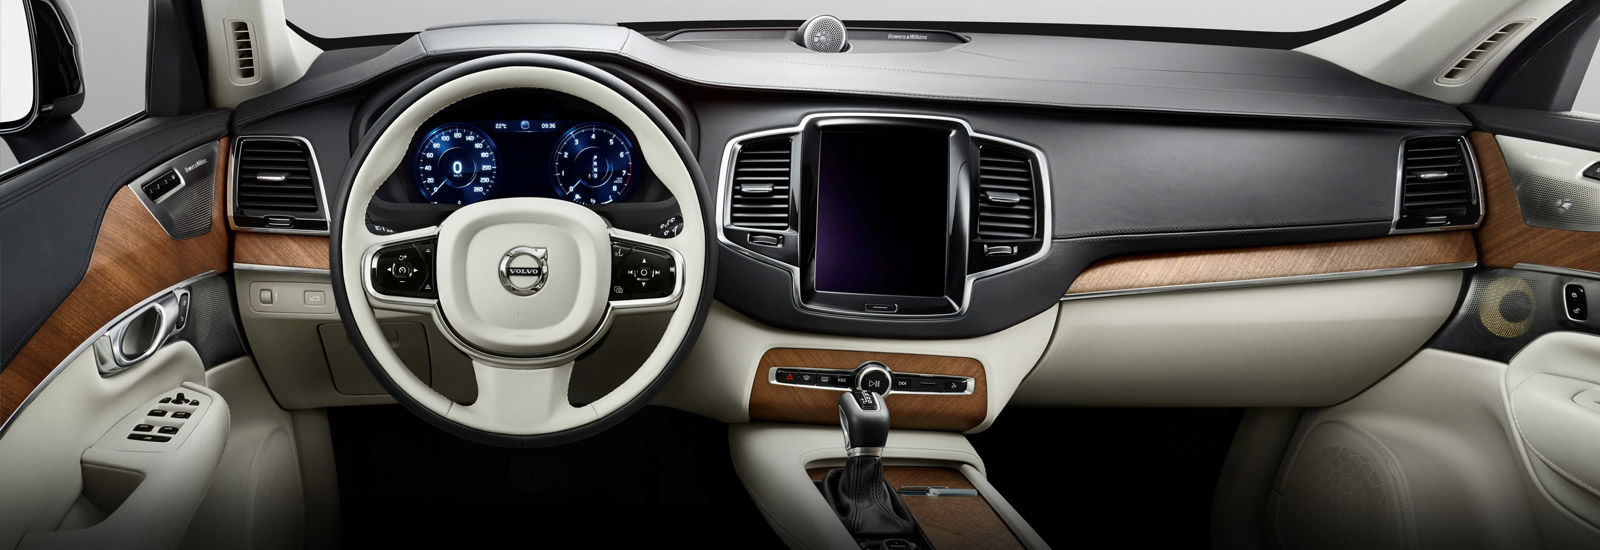 2018 volvo xc60 price specs and release date carwow for Xc60 2017 interior